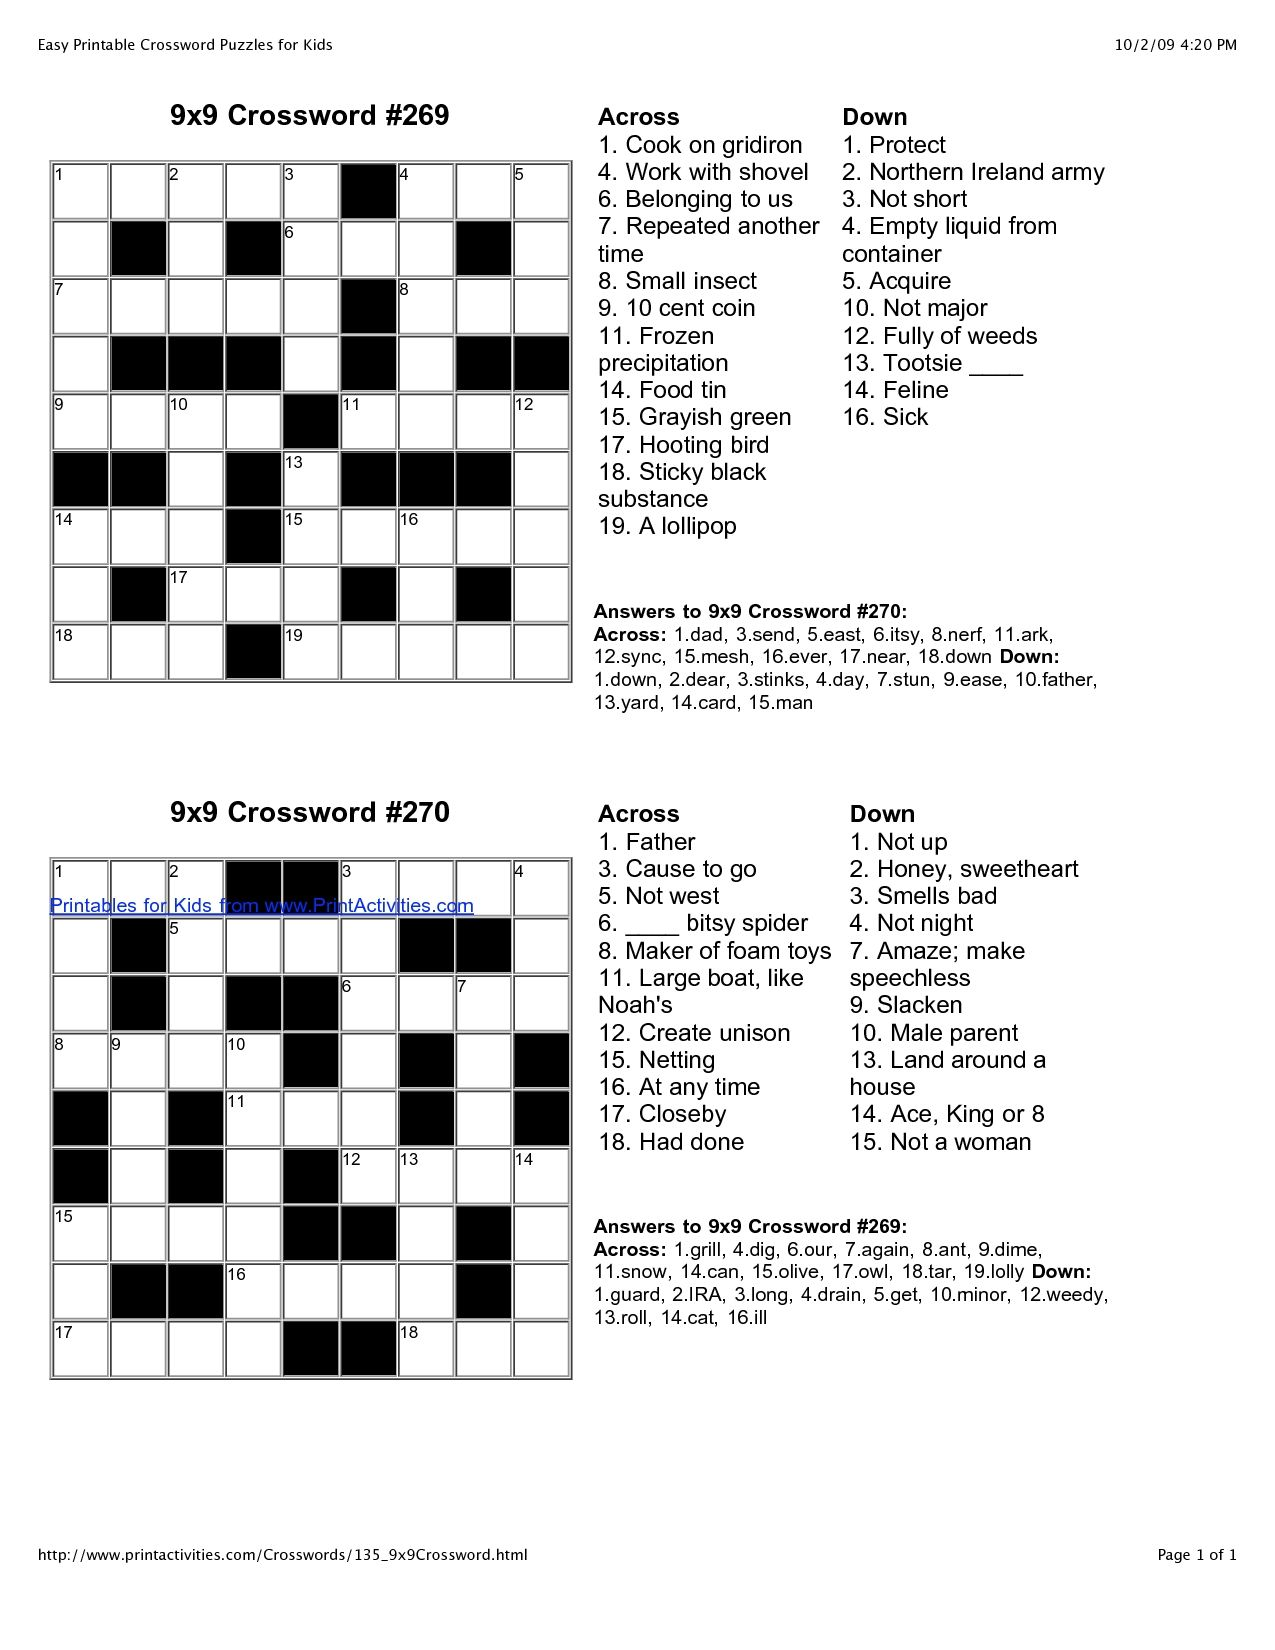 Stylist And Luxury Crossword Puzzles Easy Printable